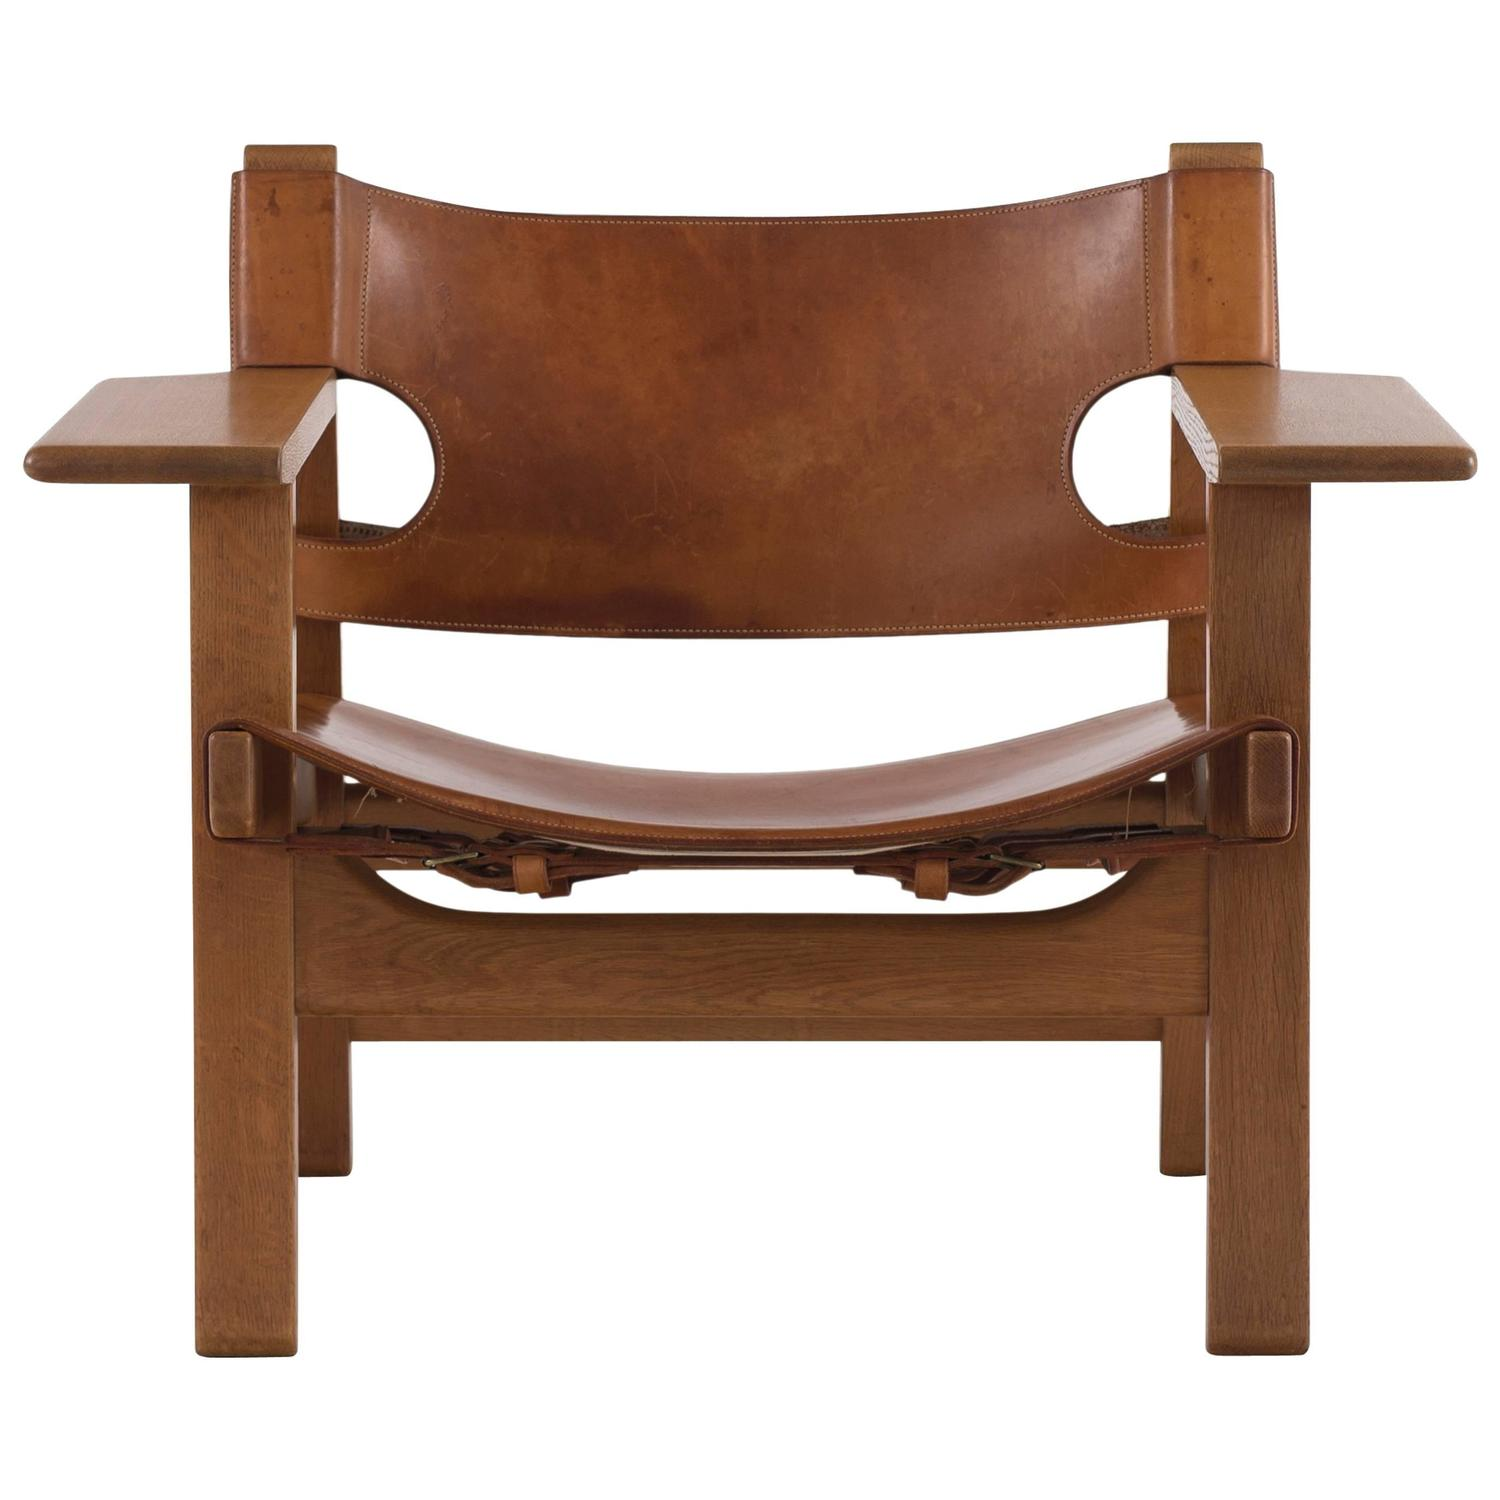 B¸rge Mogensen The Spanish Chair For Sale at 1stdibs